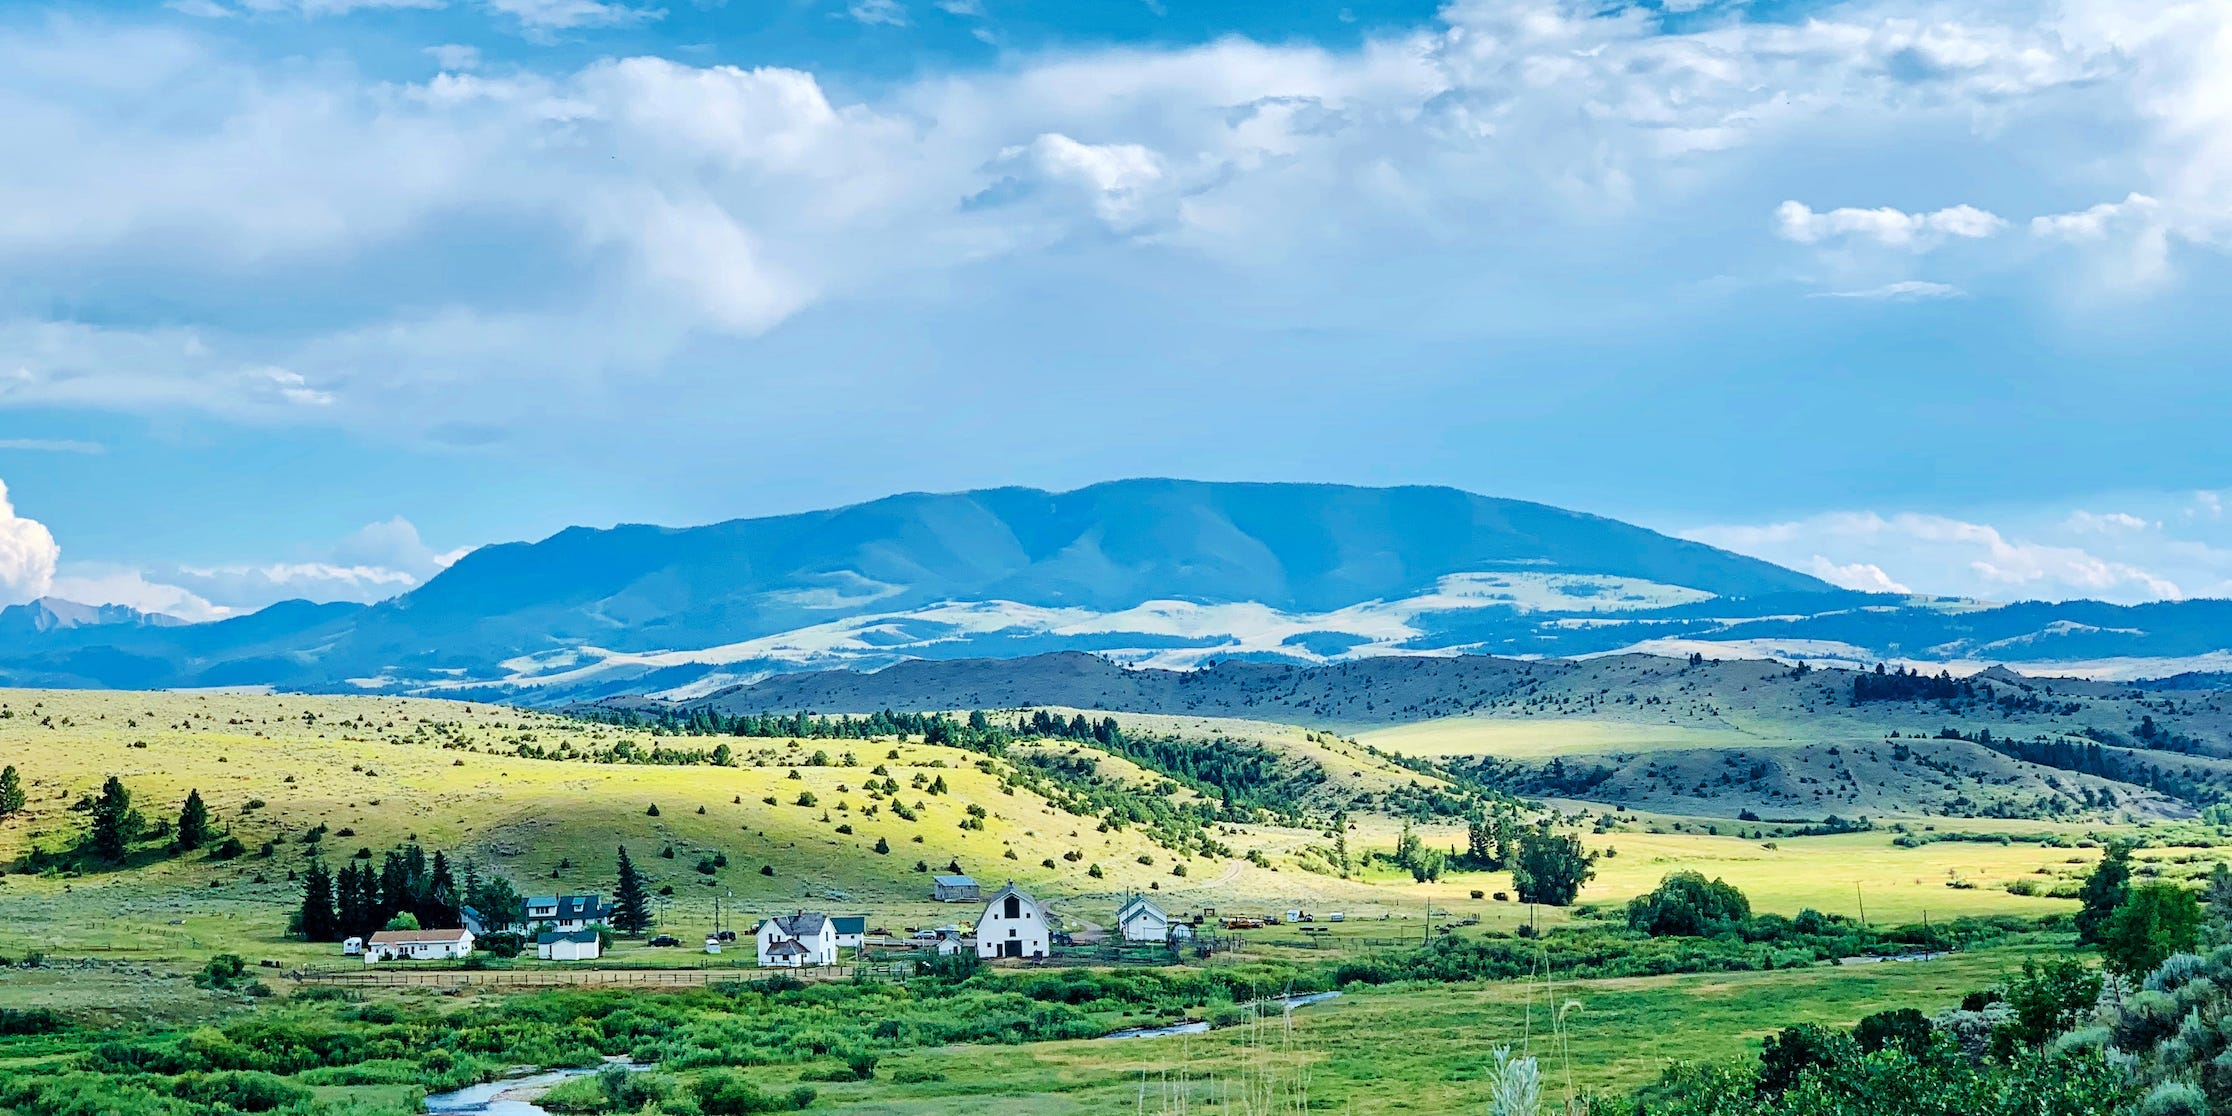 A massive Montana ranch from 'A River Runs Through It' is set to sell for $136 million in one of America's priciest ranch deals. Look around the property.